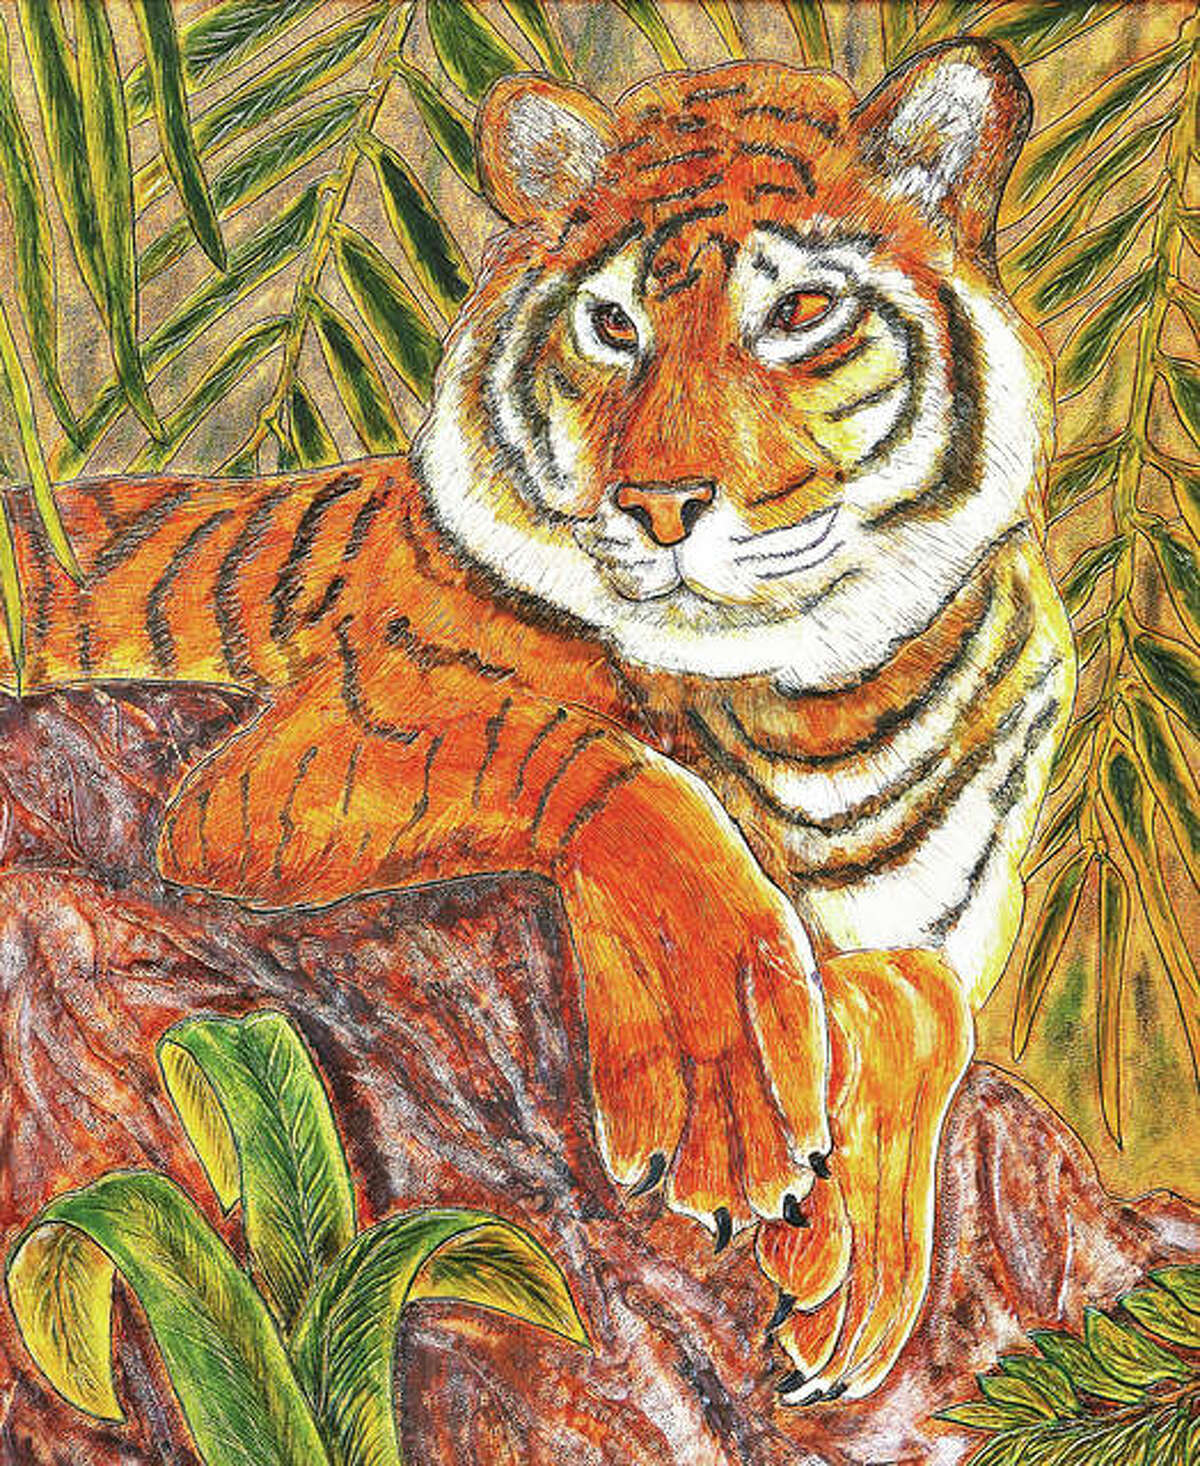 A tiger tooled on leather, then painted, by artist Terry Diveley.